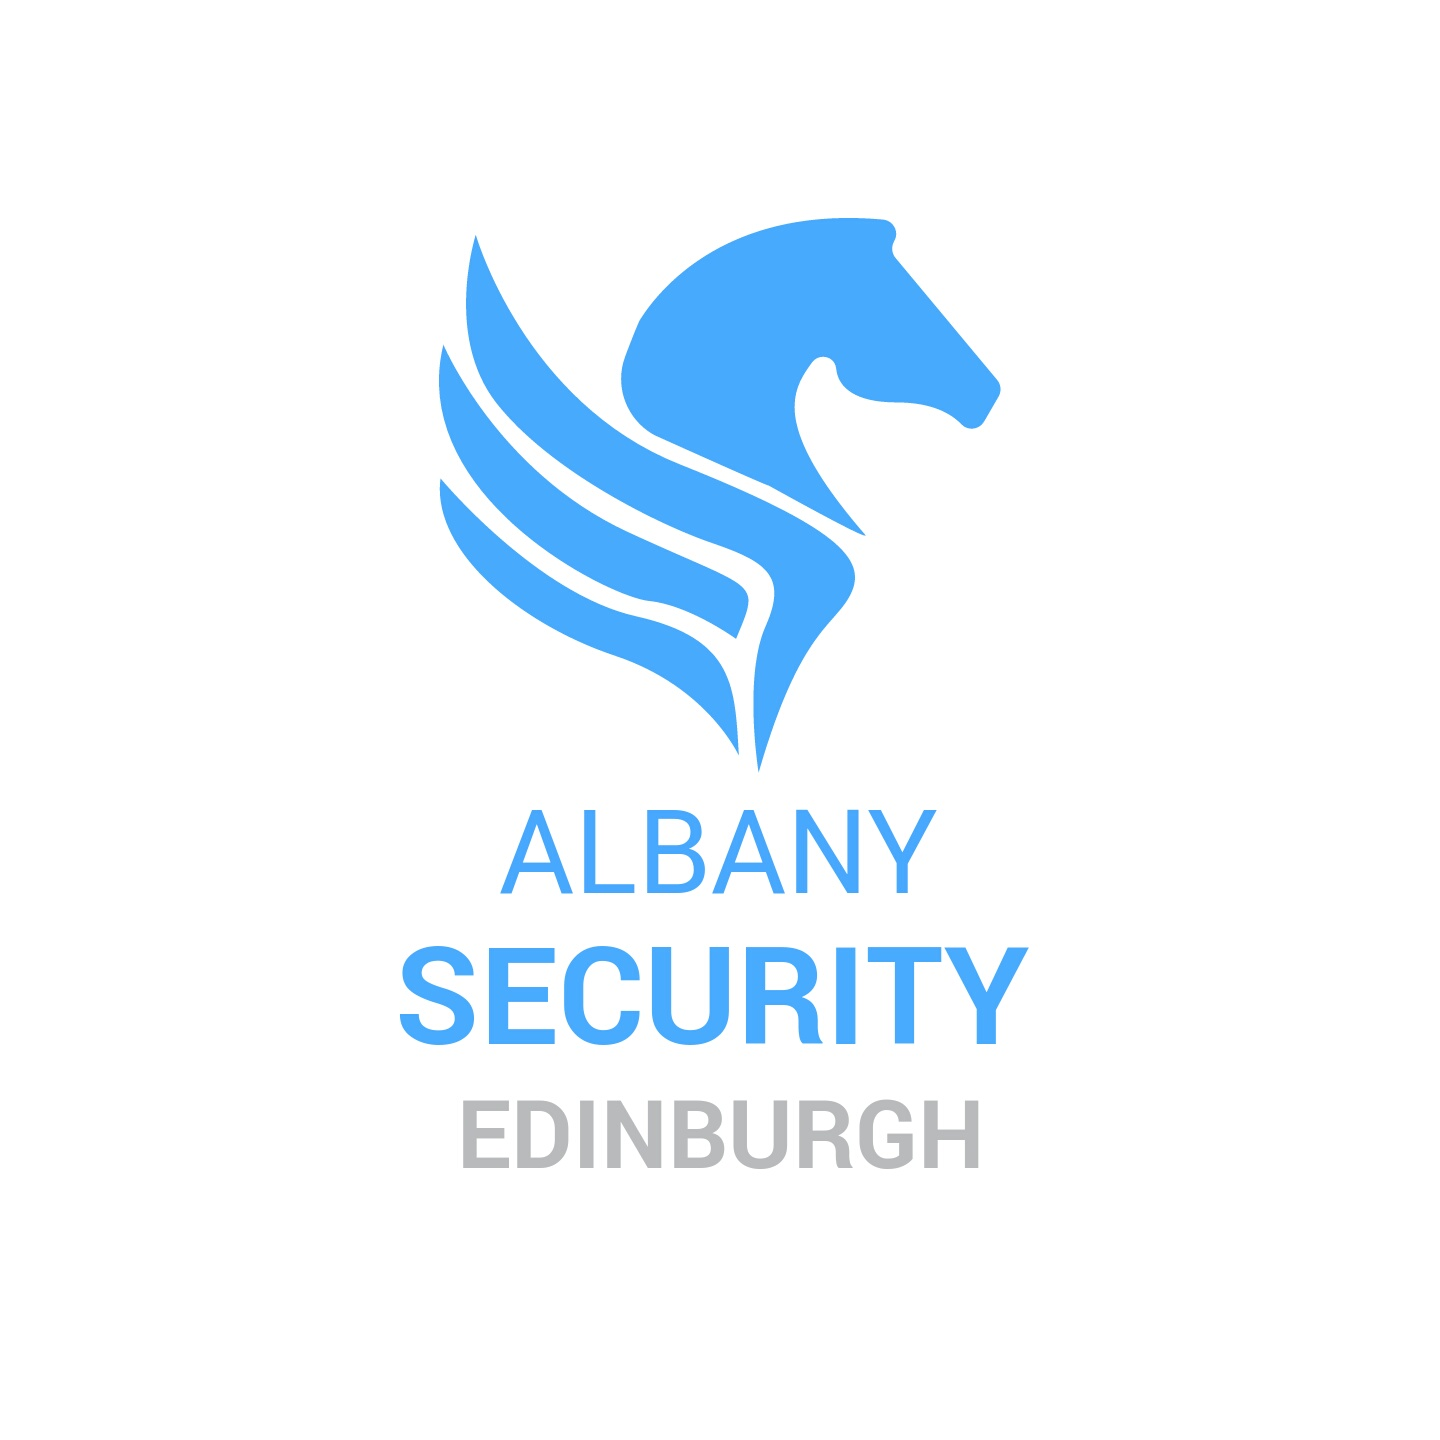 Albany Security Company Edinburgh Ltd